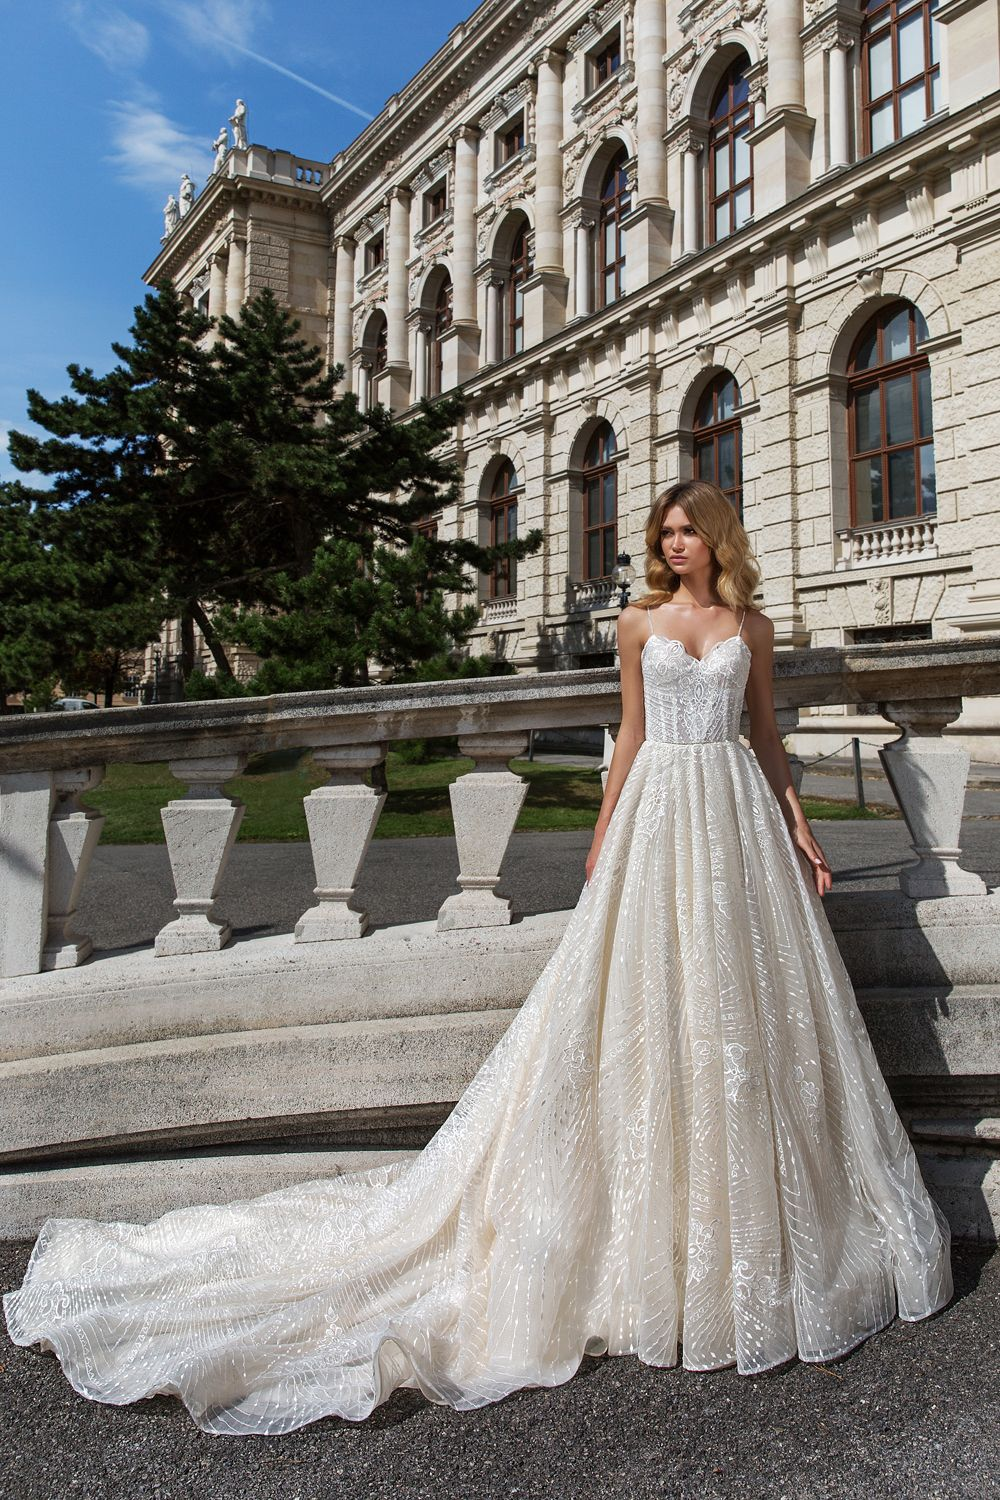 Sofie by crystal design exclusively available at merlili bridal in